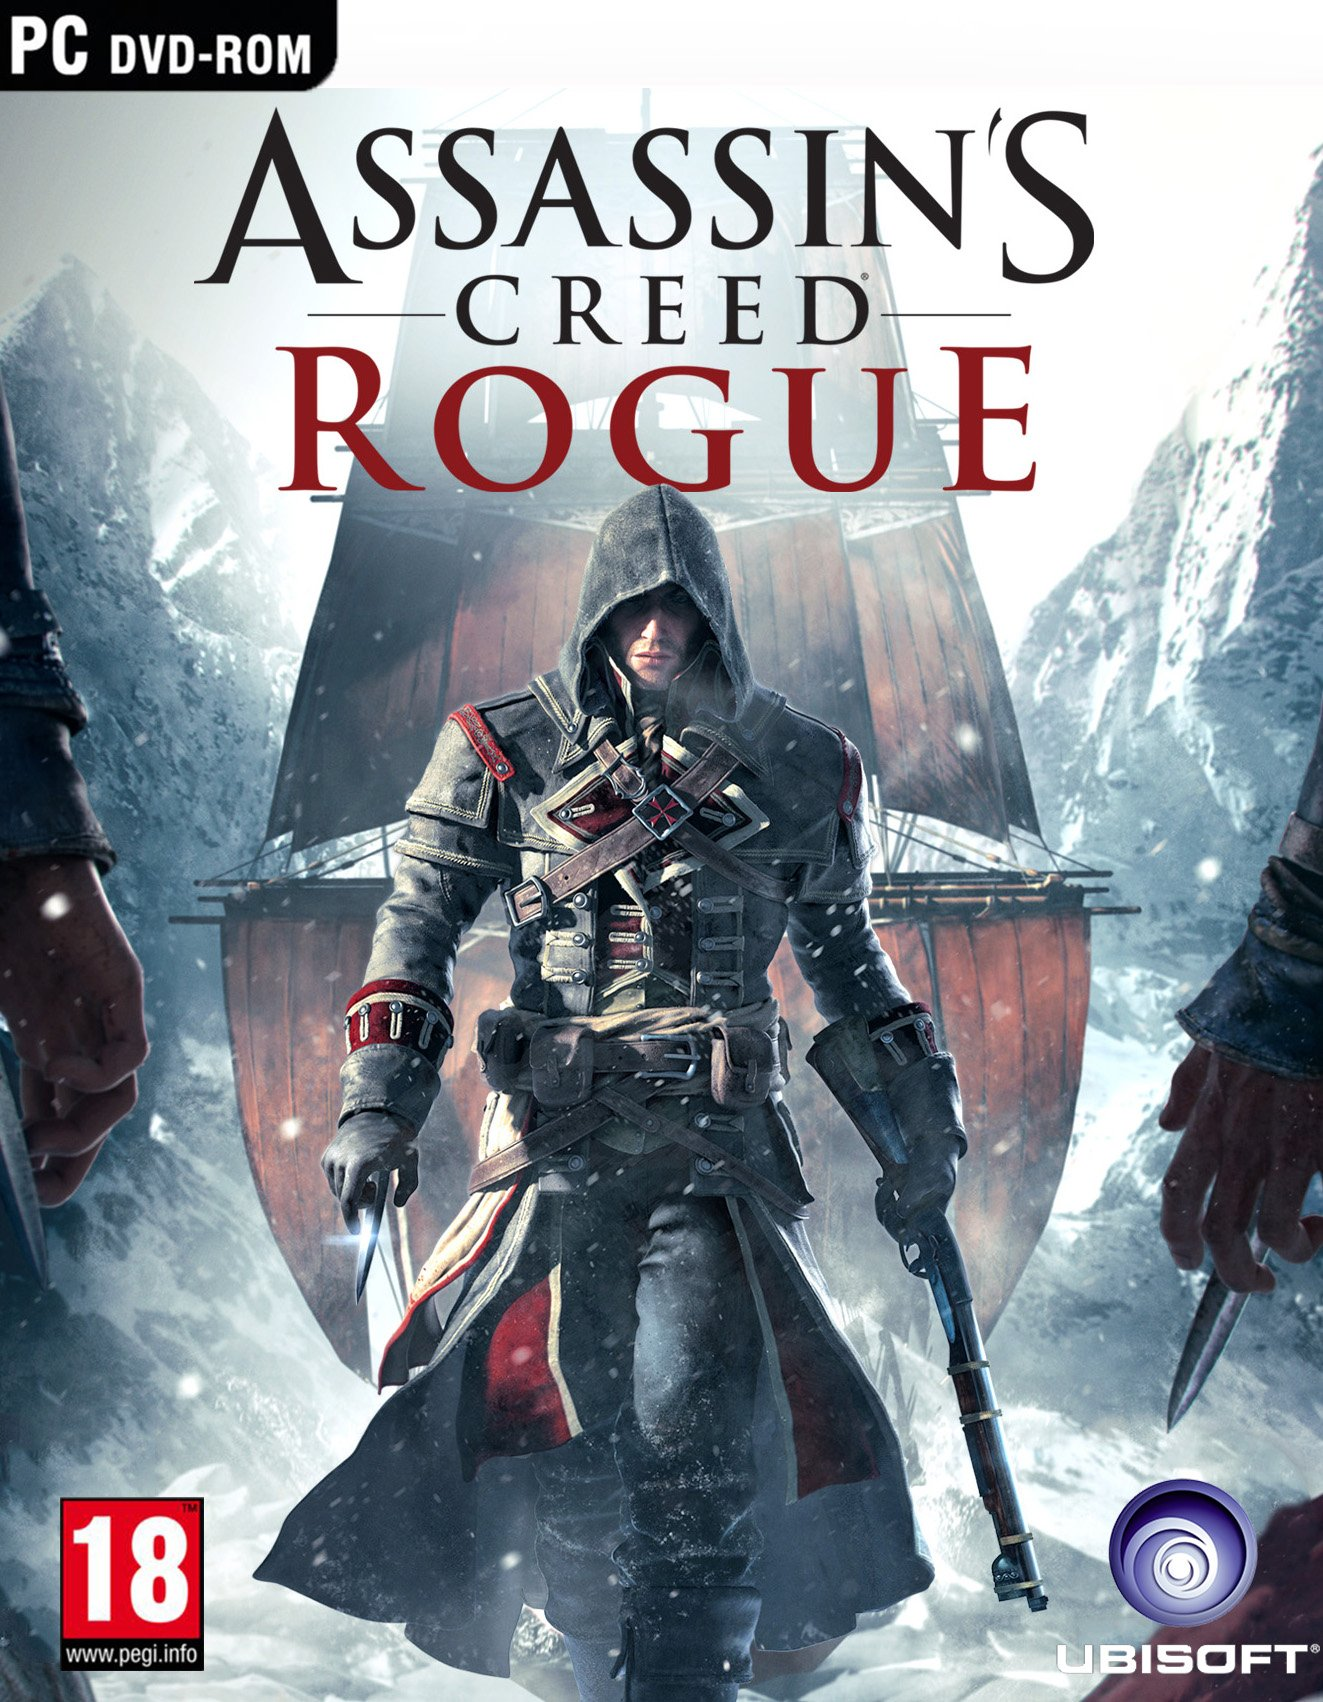 Assassin's Creed: Rogue / Изгой (2015) RePack